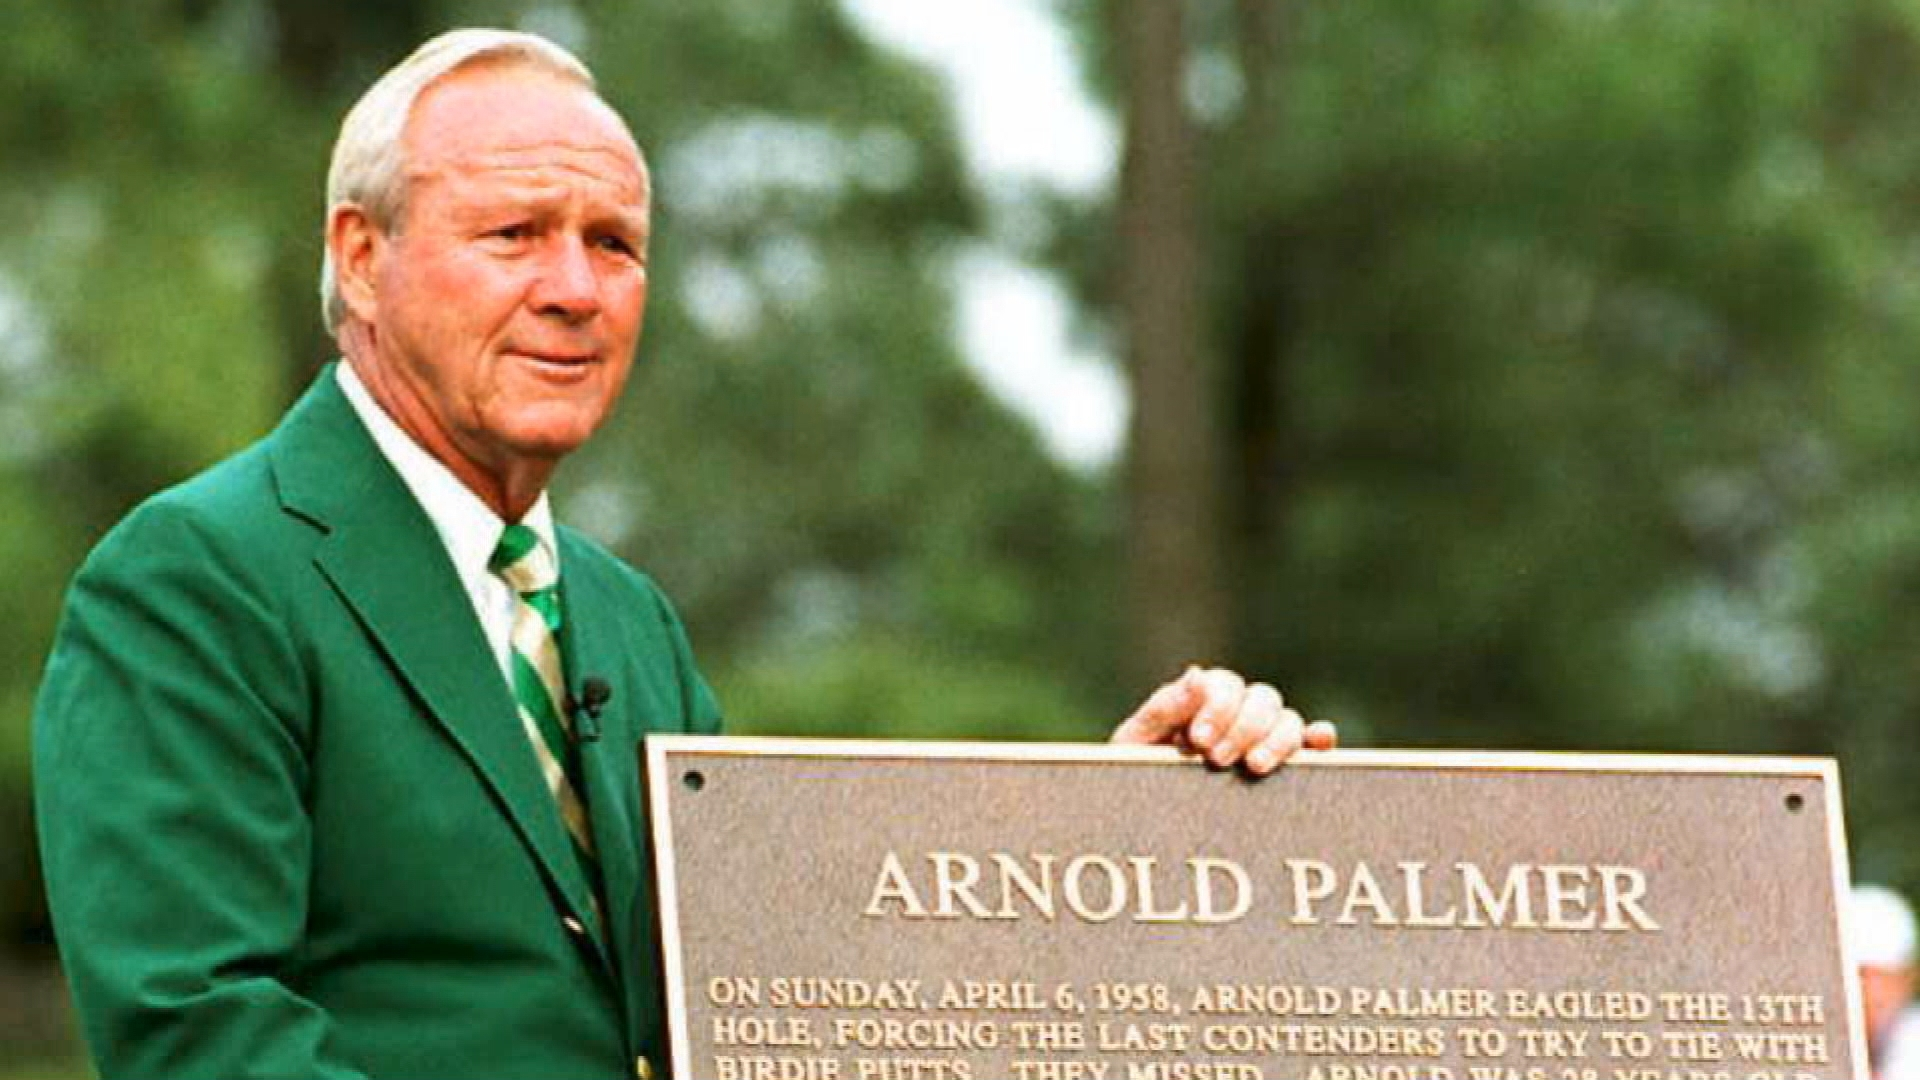 Arnold Palmer Pictures His Life In Photographs: In Memoriam: Arnold Palmer